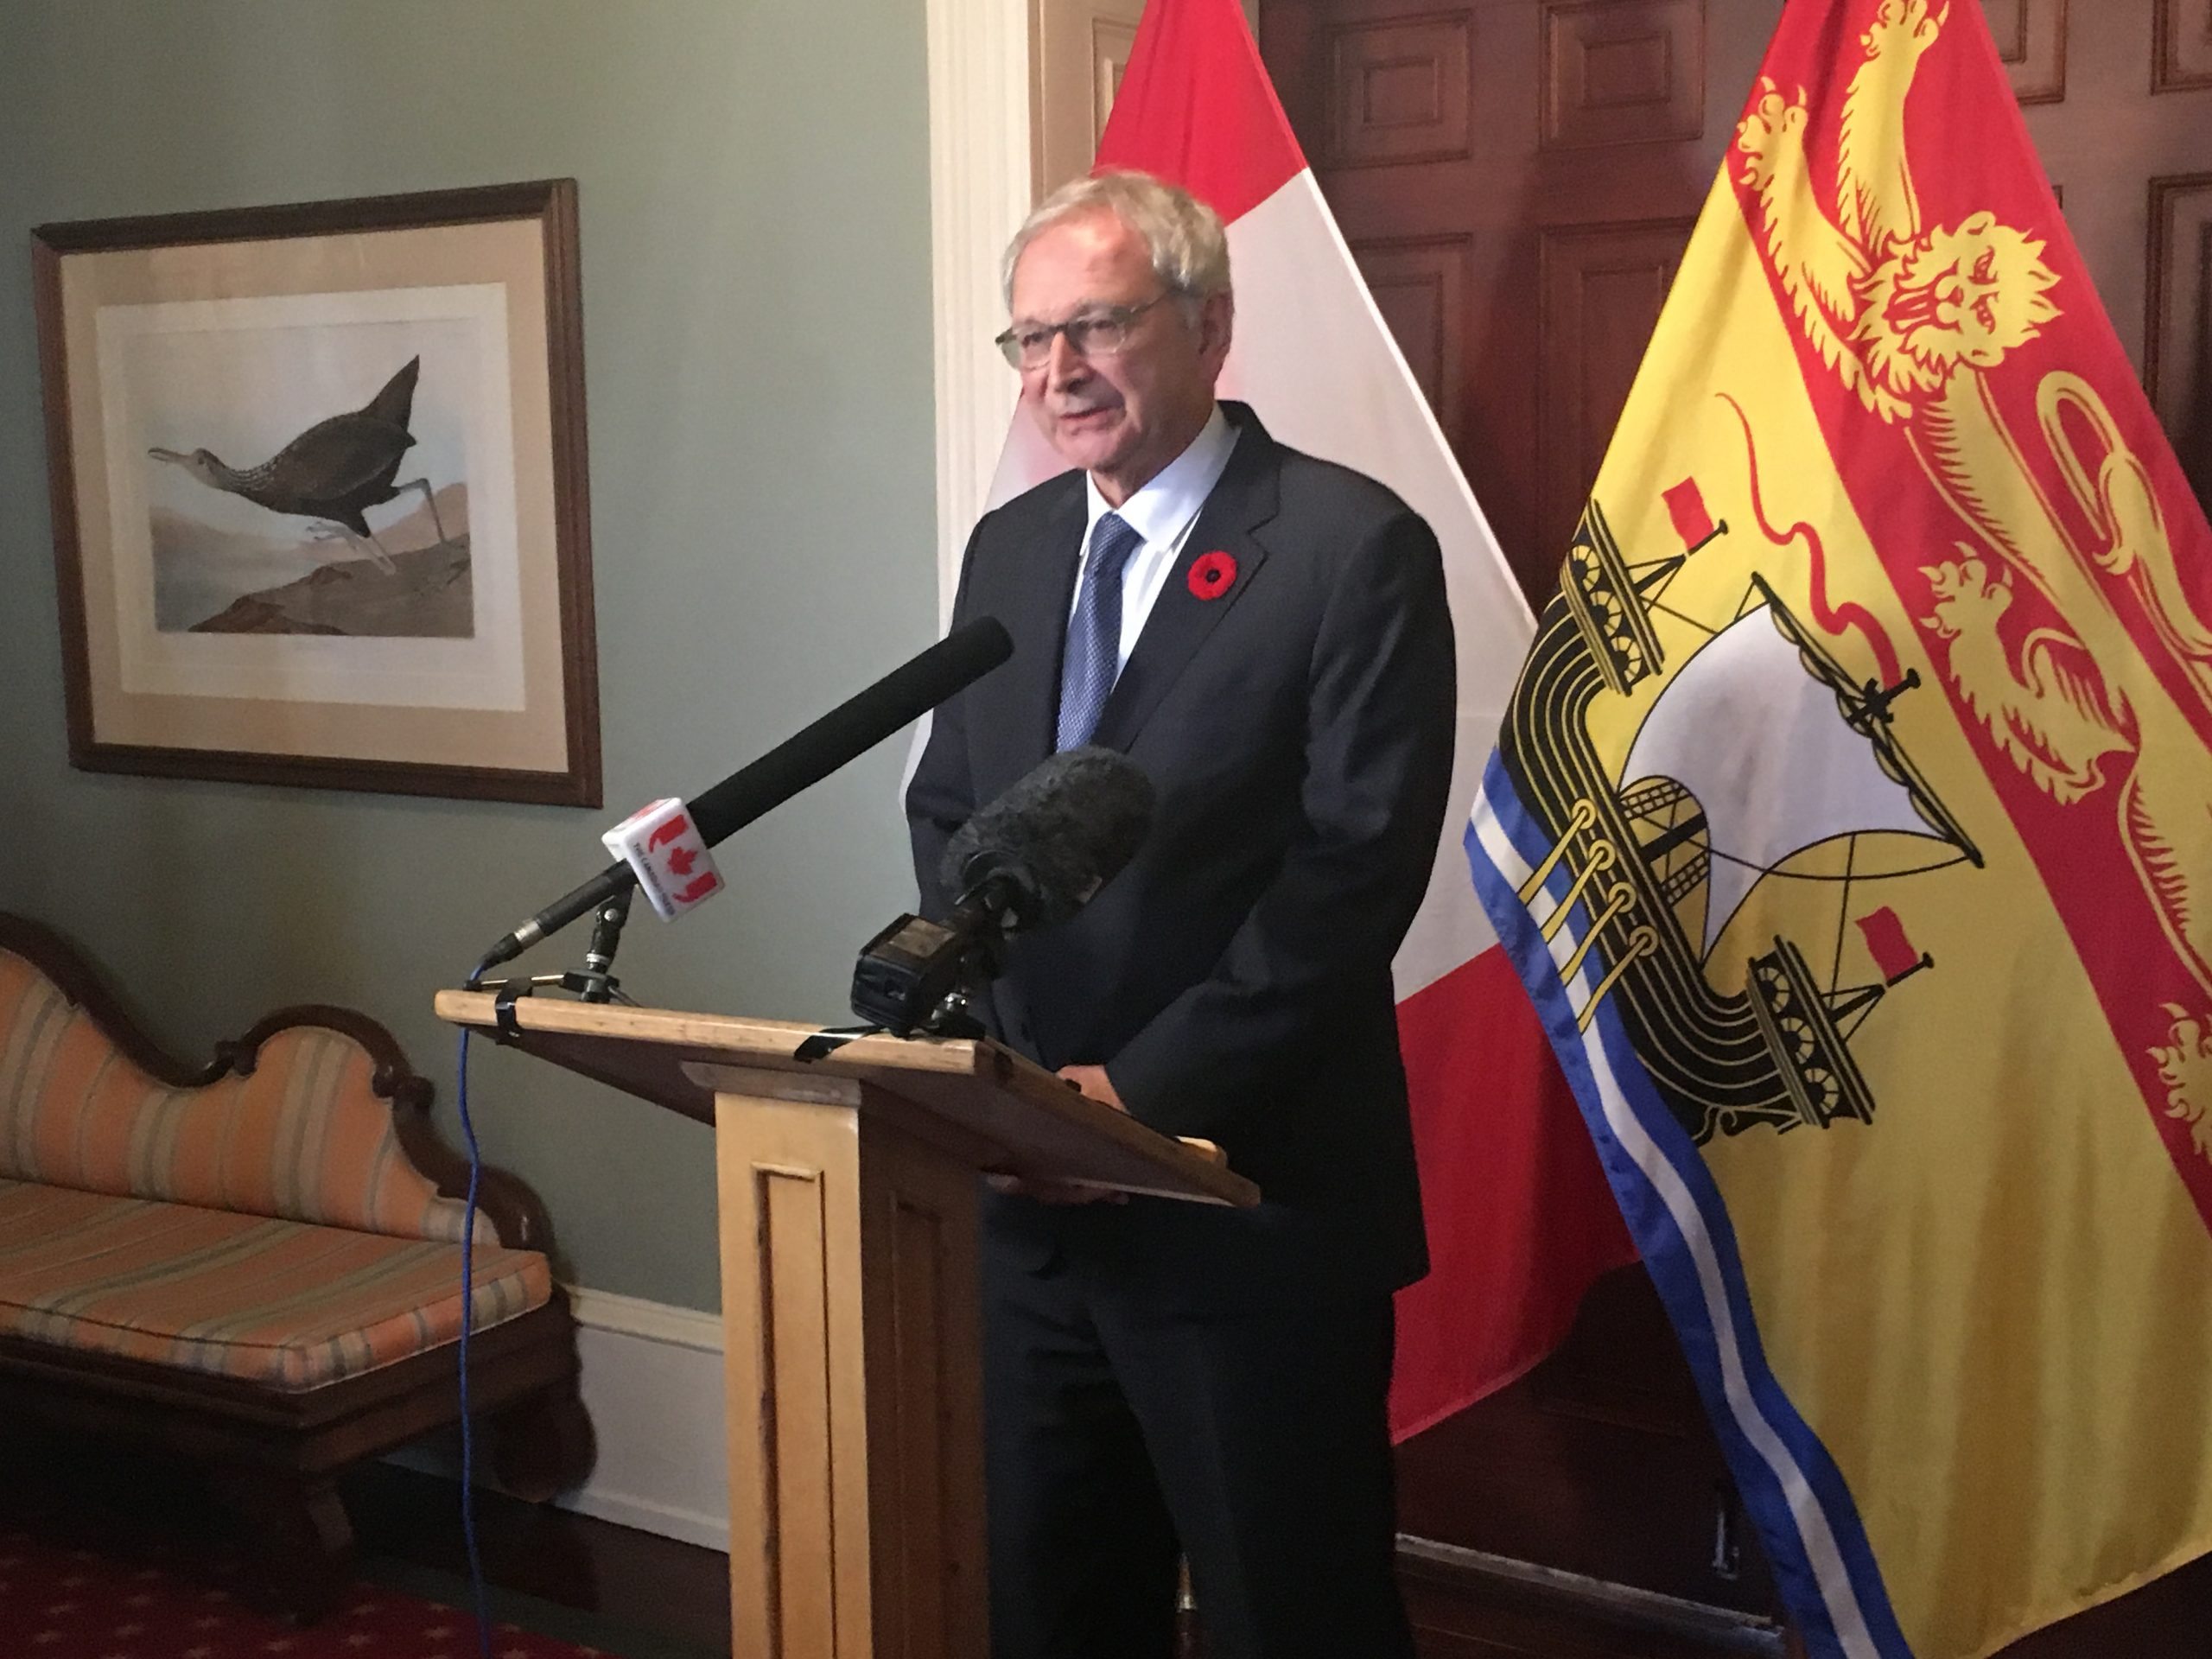 Higgs Calls Fixing Province A Joint Effort